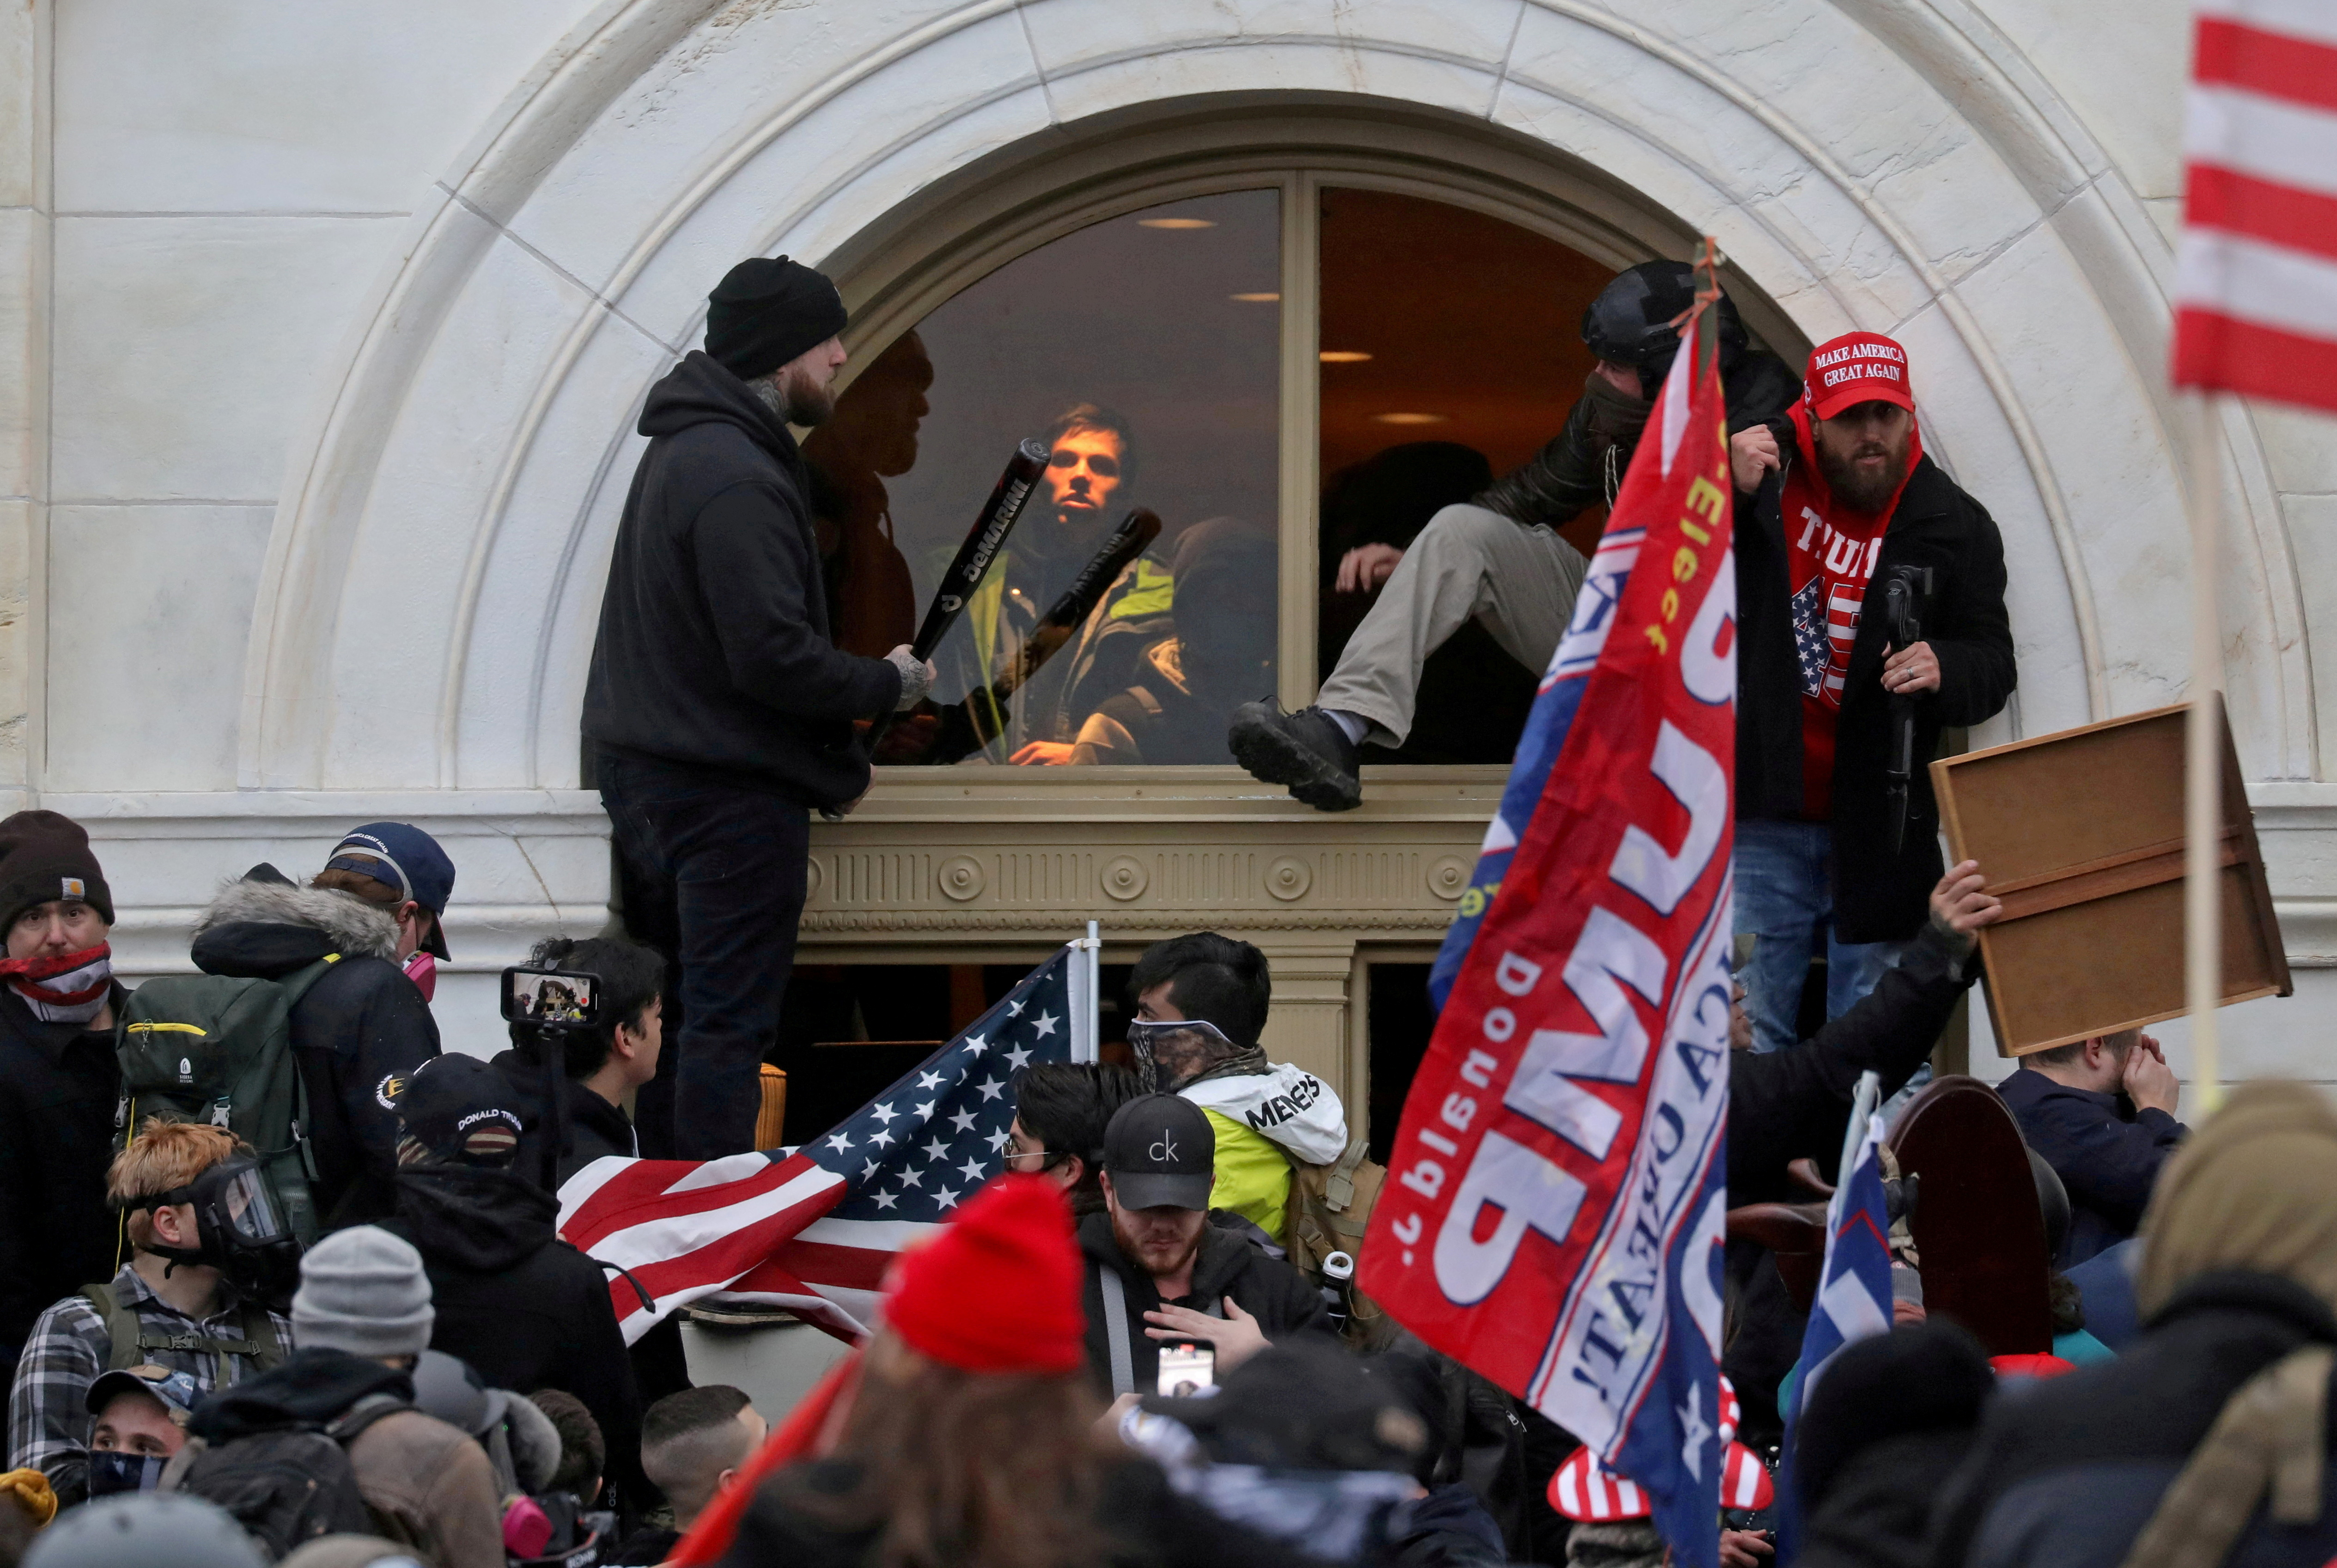 A mob of supporters of U.S. President Donald Trump climb through a window they broke as they storm the U.S. Capitol Building in Washington, U.S., January 6, 2021. REUTERS/Leah Millis/File Photo